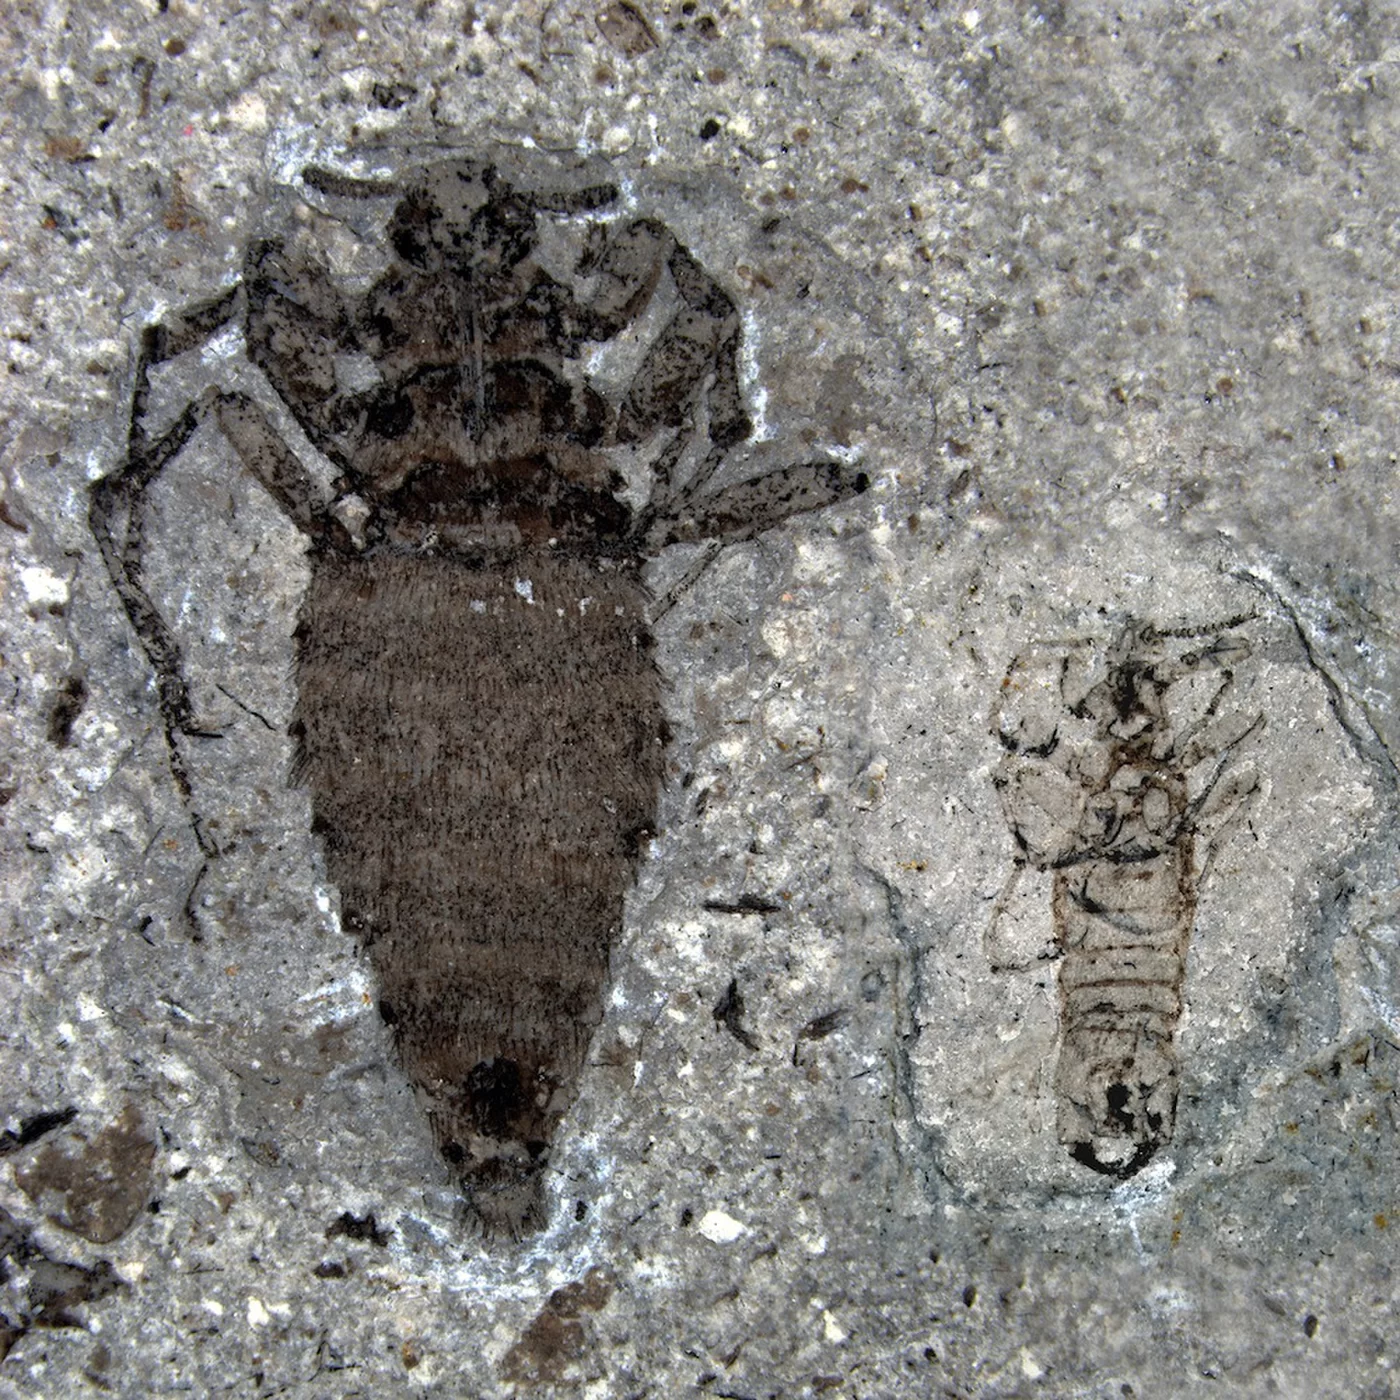 A fossil of a male and female flea from the Jurassic Period.